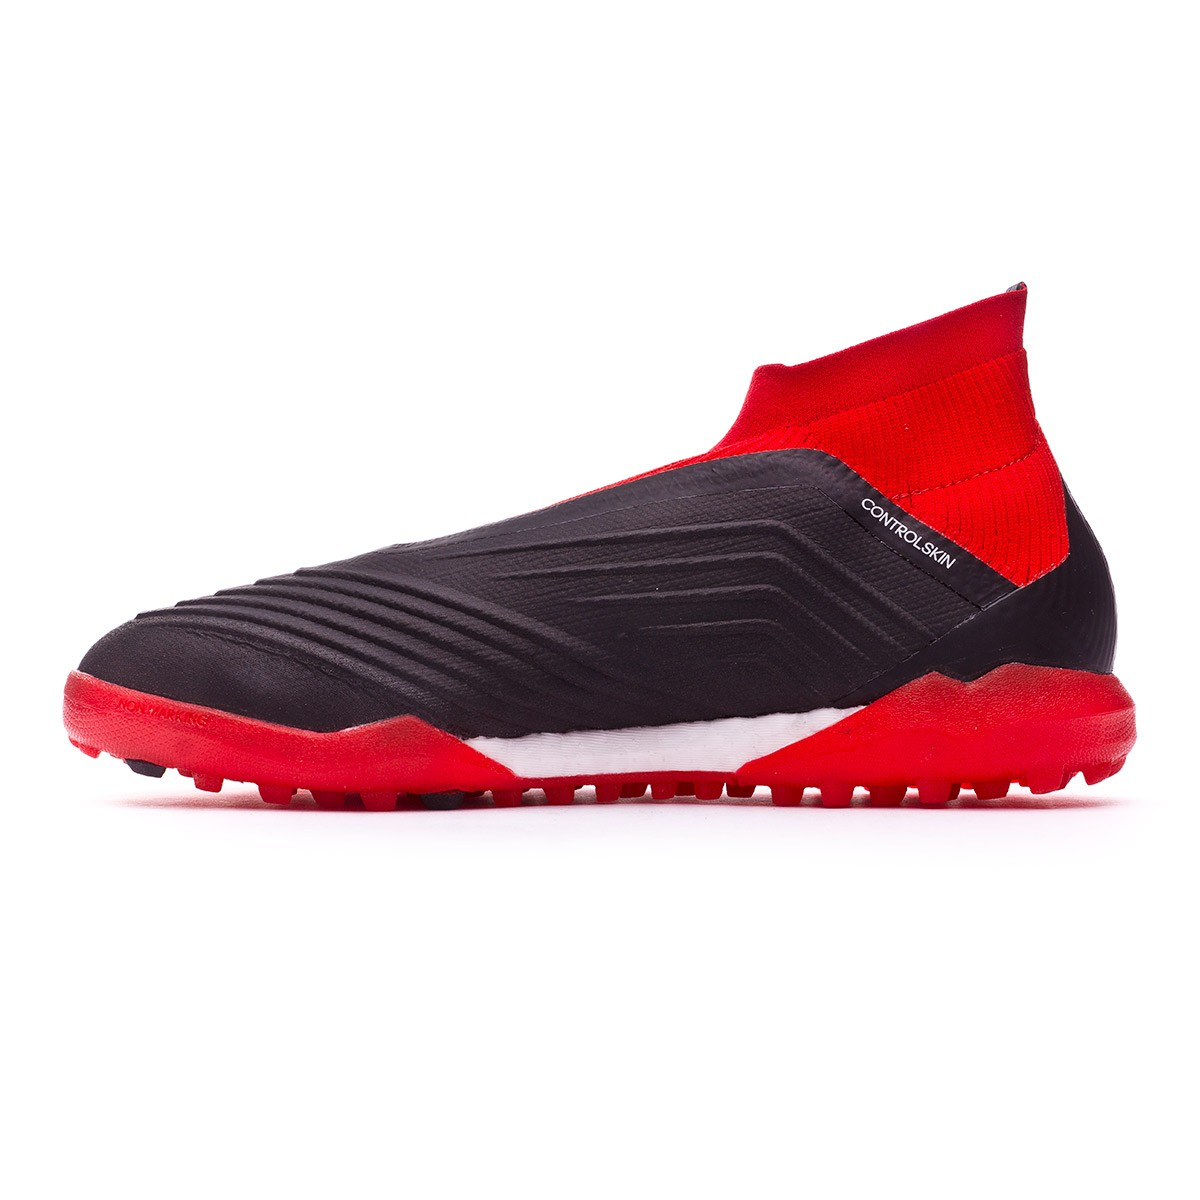 check out c251f 69ef5 Football Boot adidas Predator Tango 18+ Turf Core black-White-Red - Leaked  soccer